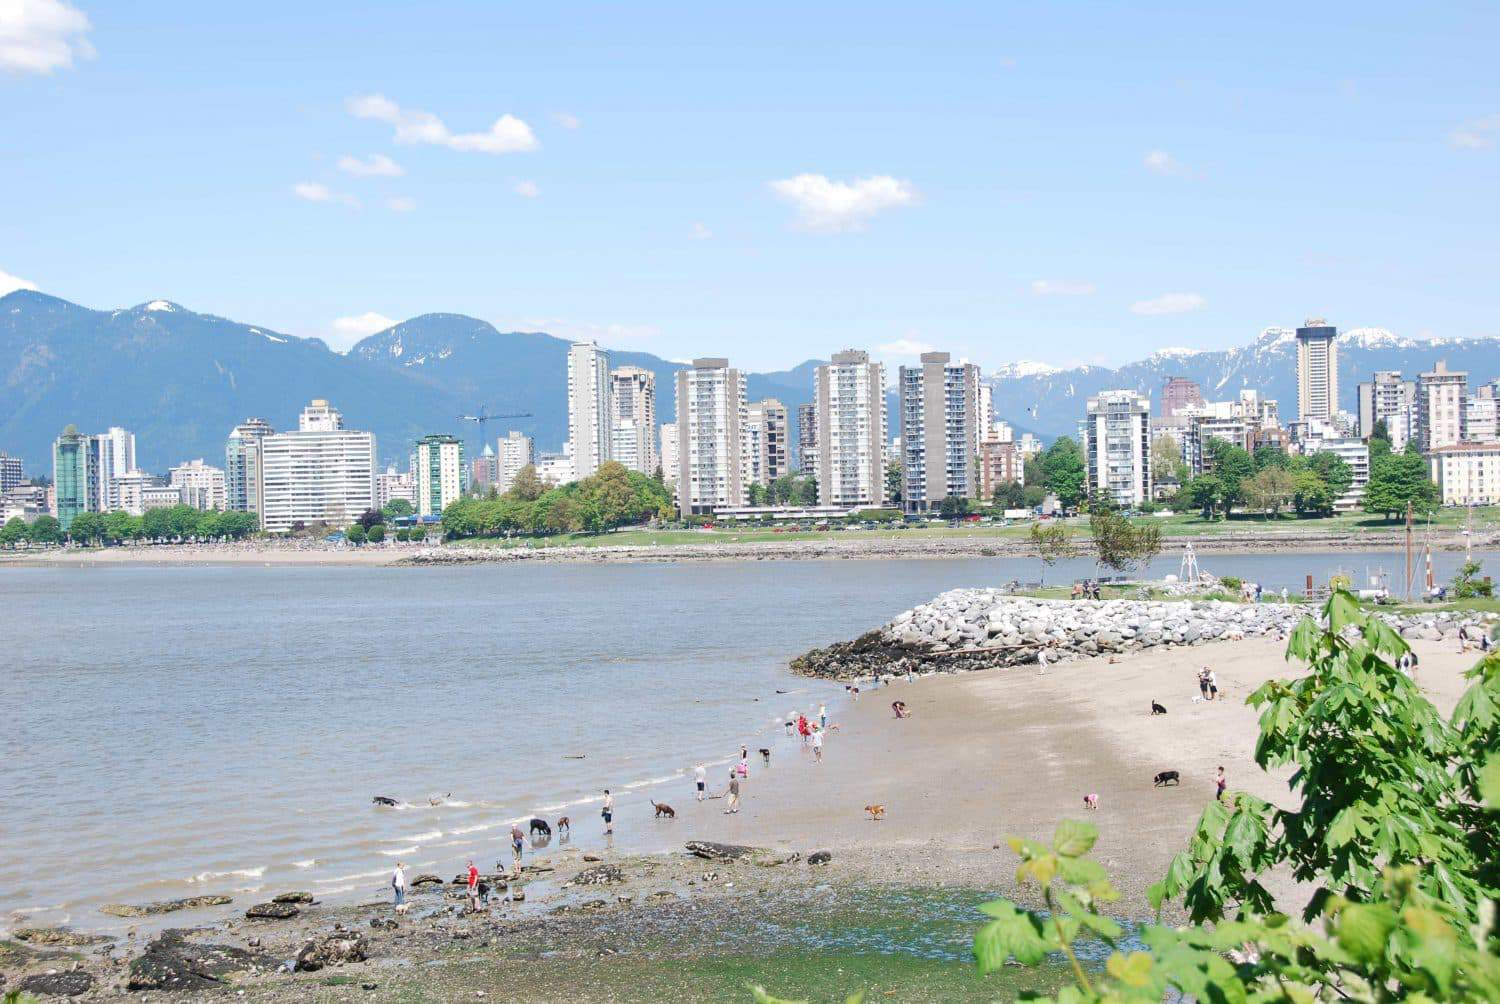 Whats the best beach in Vancouve to visit?